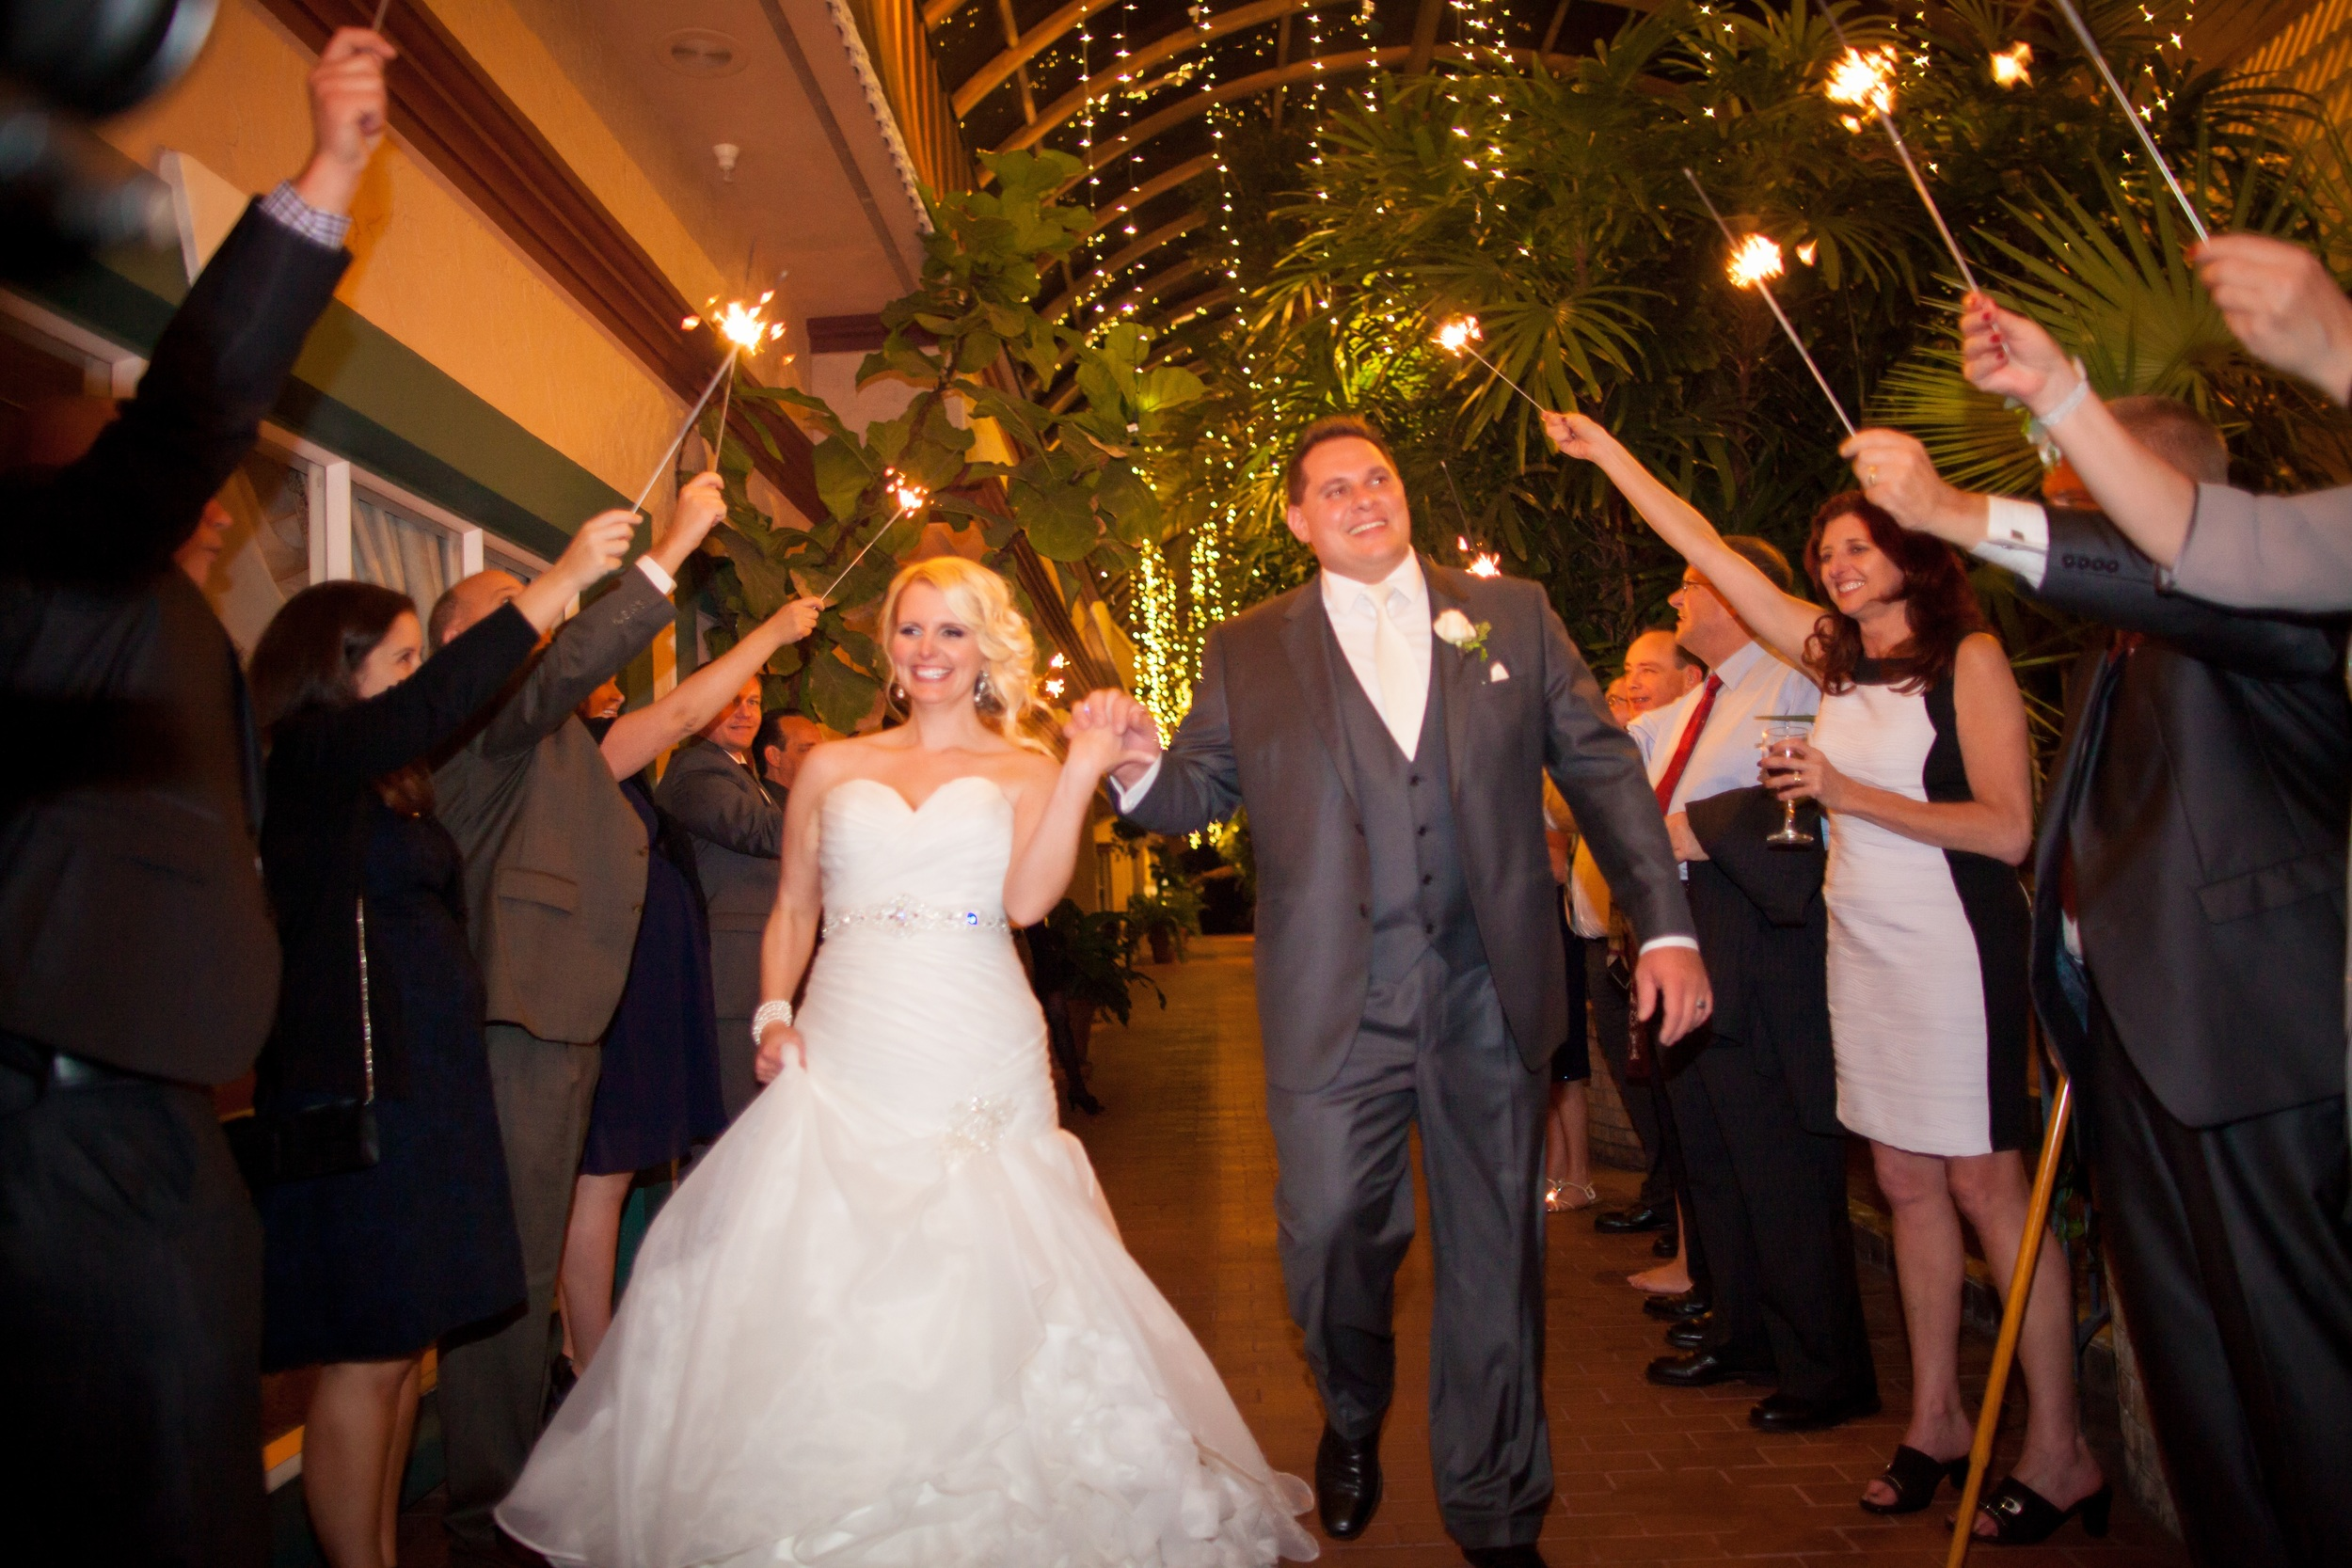 The couple exited through a tunnel of sparklers in the Michael's atrium